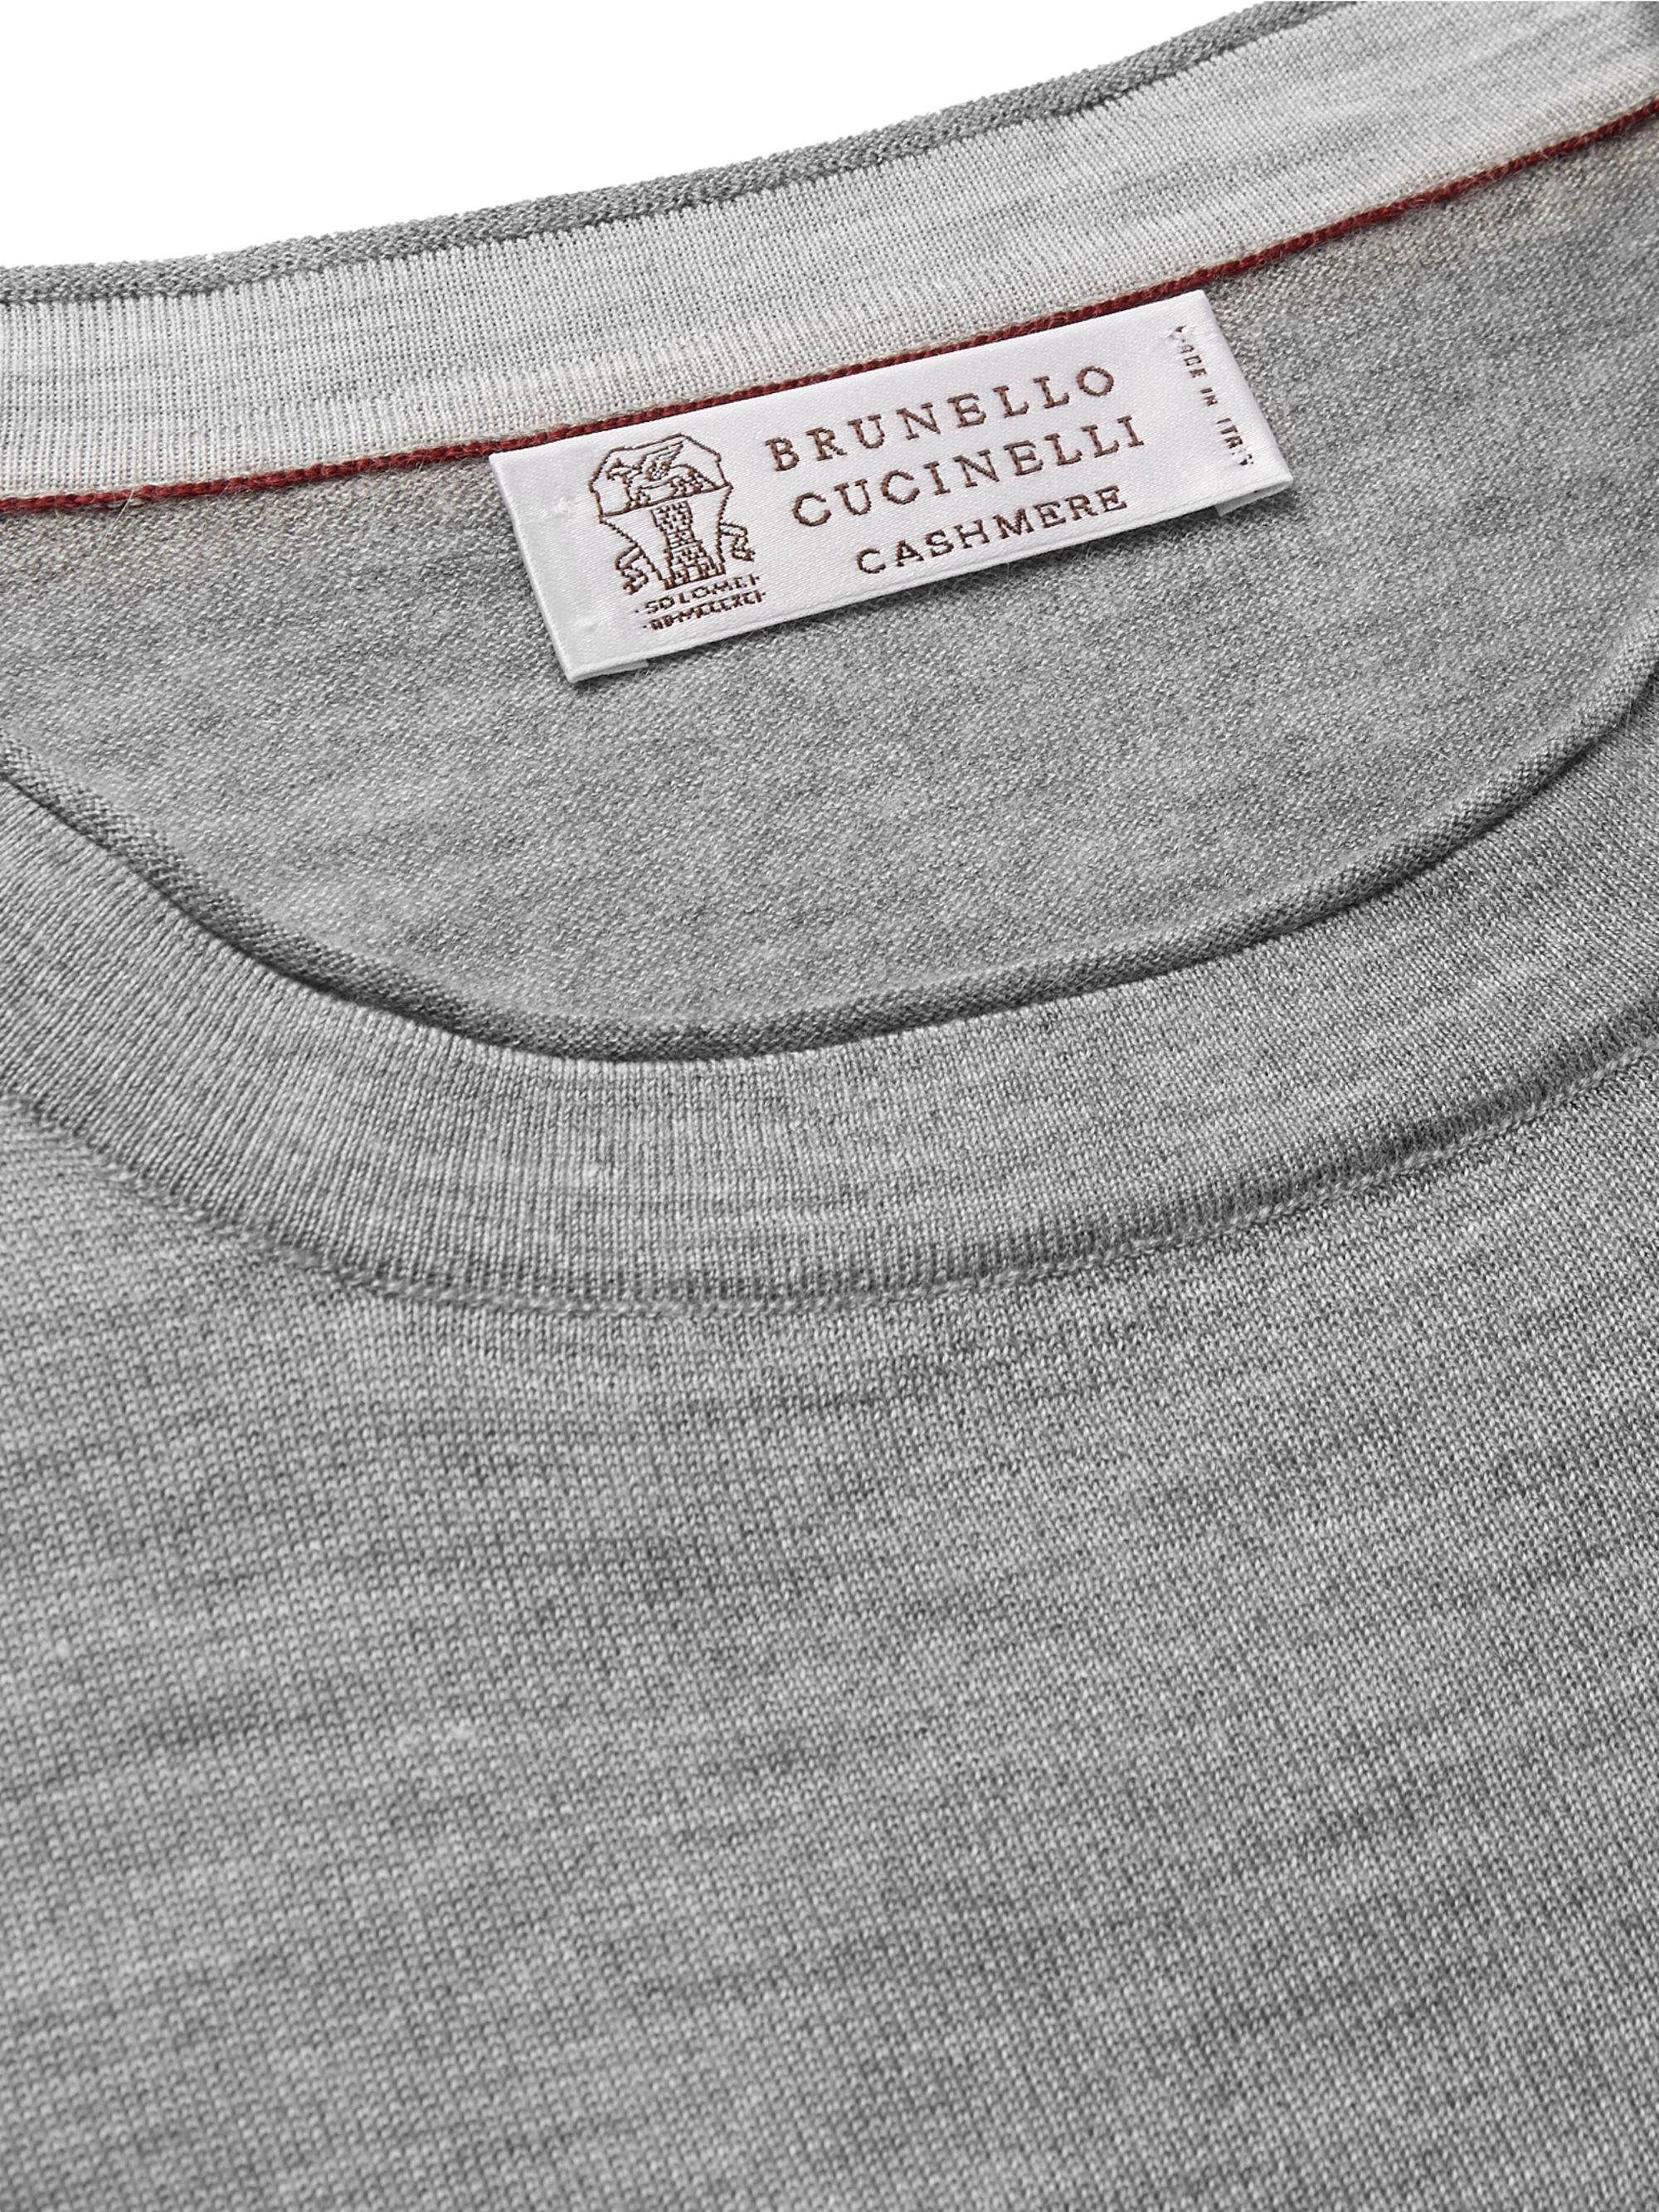 Brunello Cucinelli Mélange Cashmere and Silk-Blend Sweater